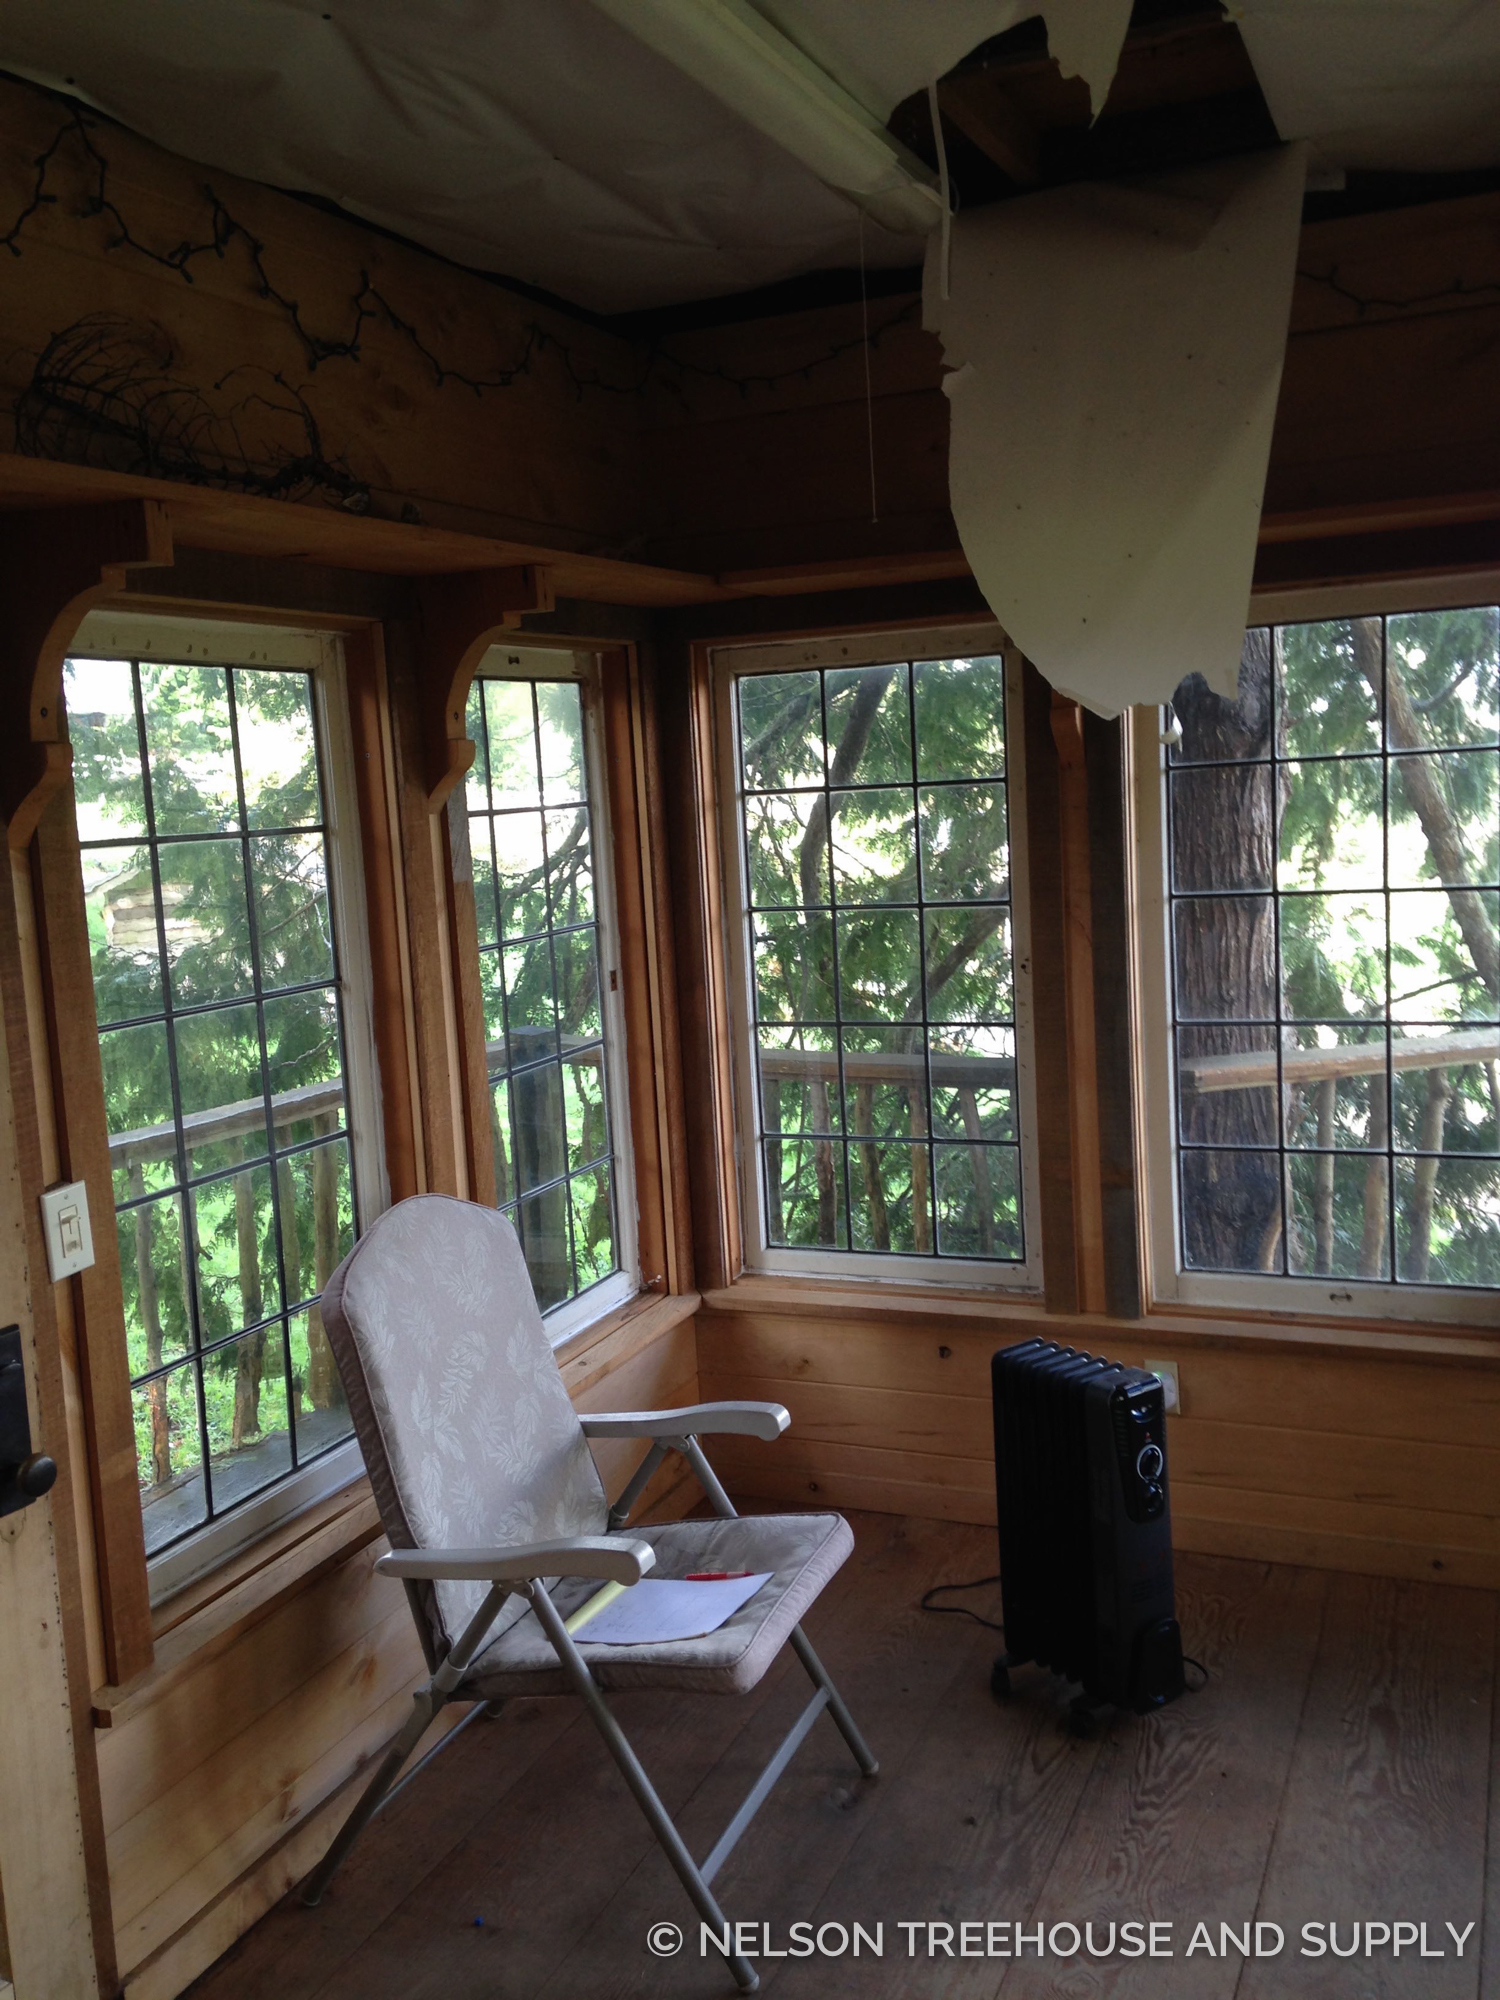 Insulation was falling from the ceiling before Pete and the crew tackled the remodel.